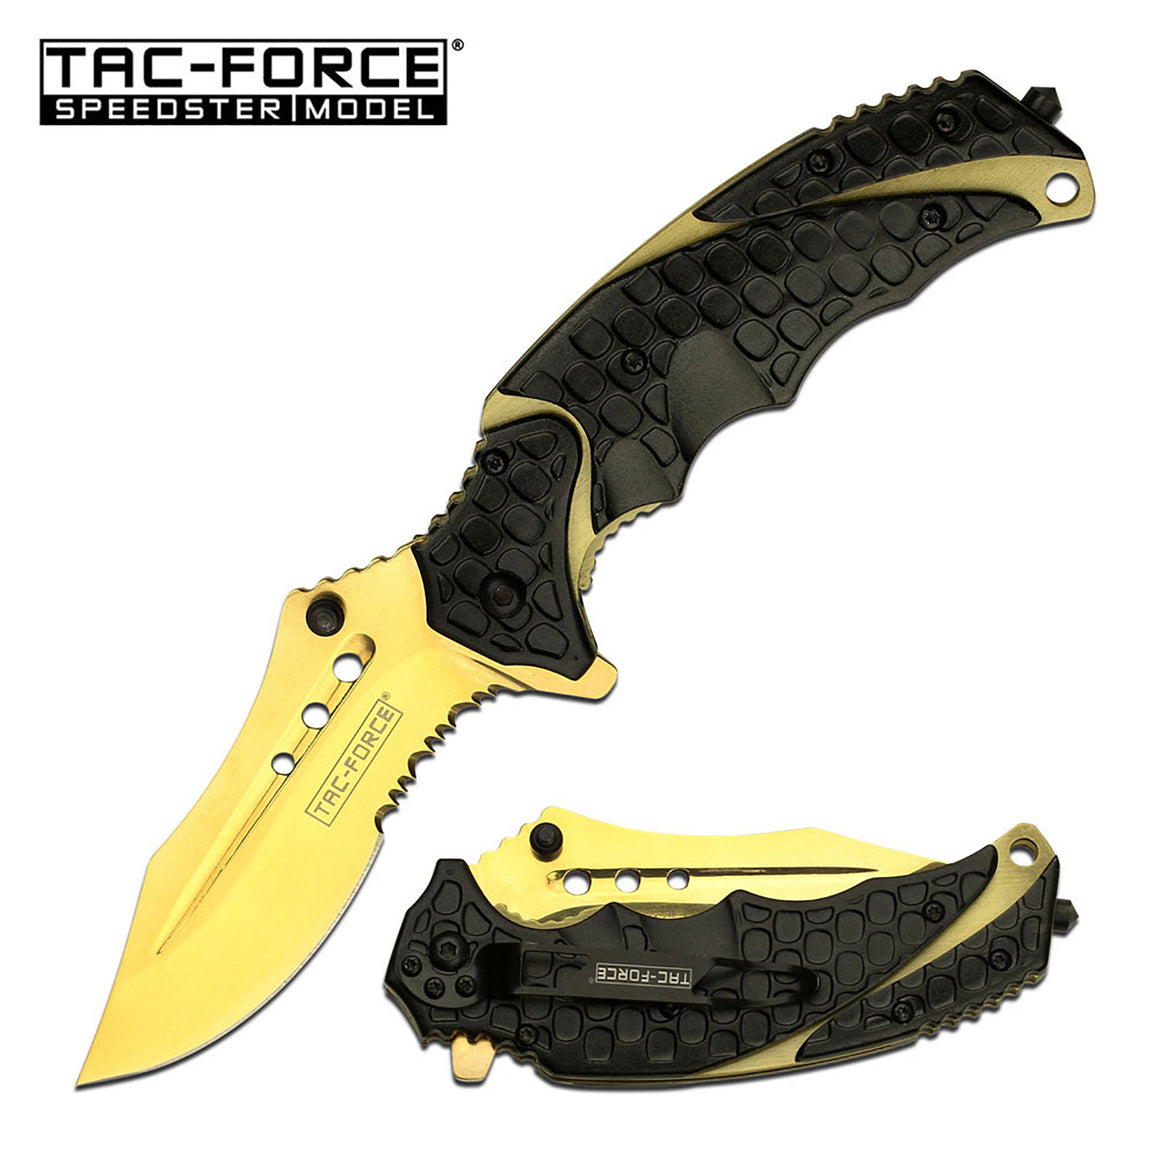 Tac-Force TF-943BG Spring Assisted Knife